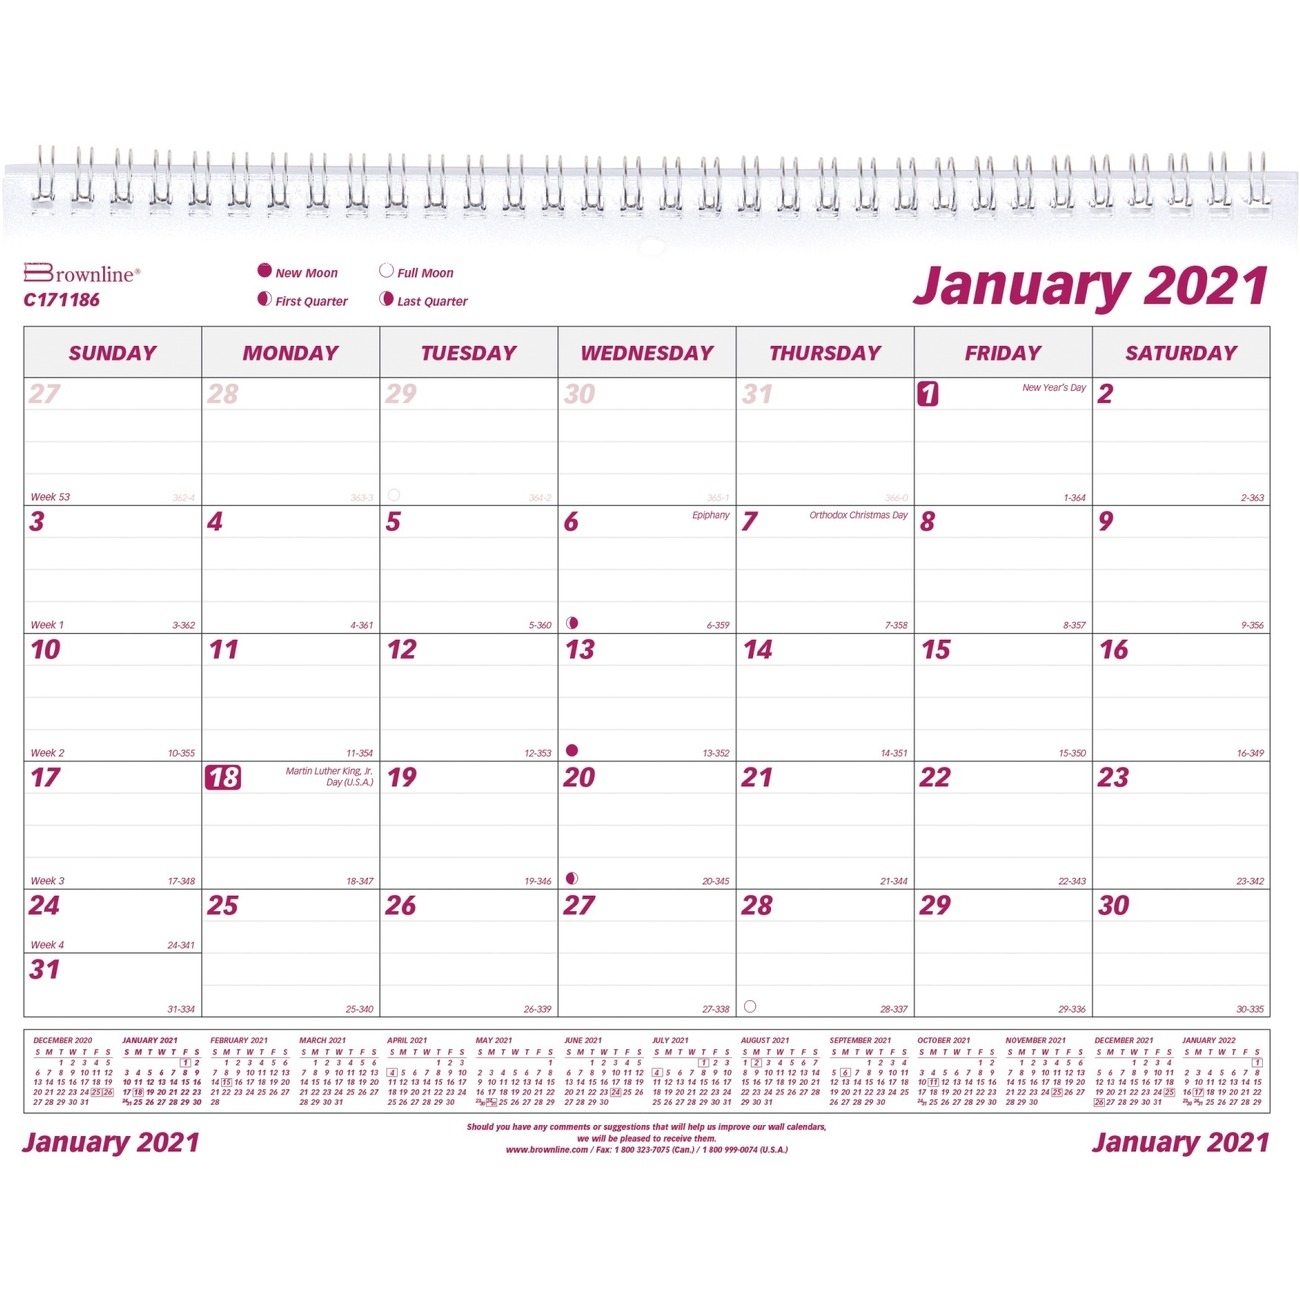 Catch Annual Calendar By Month With Julian Dates